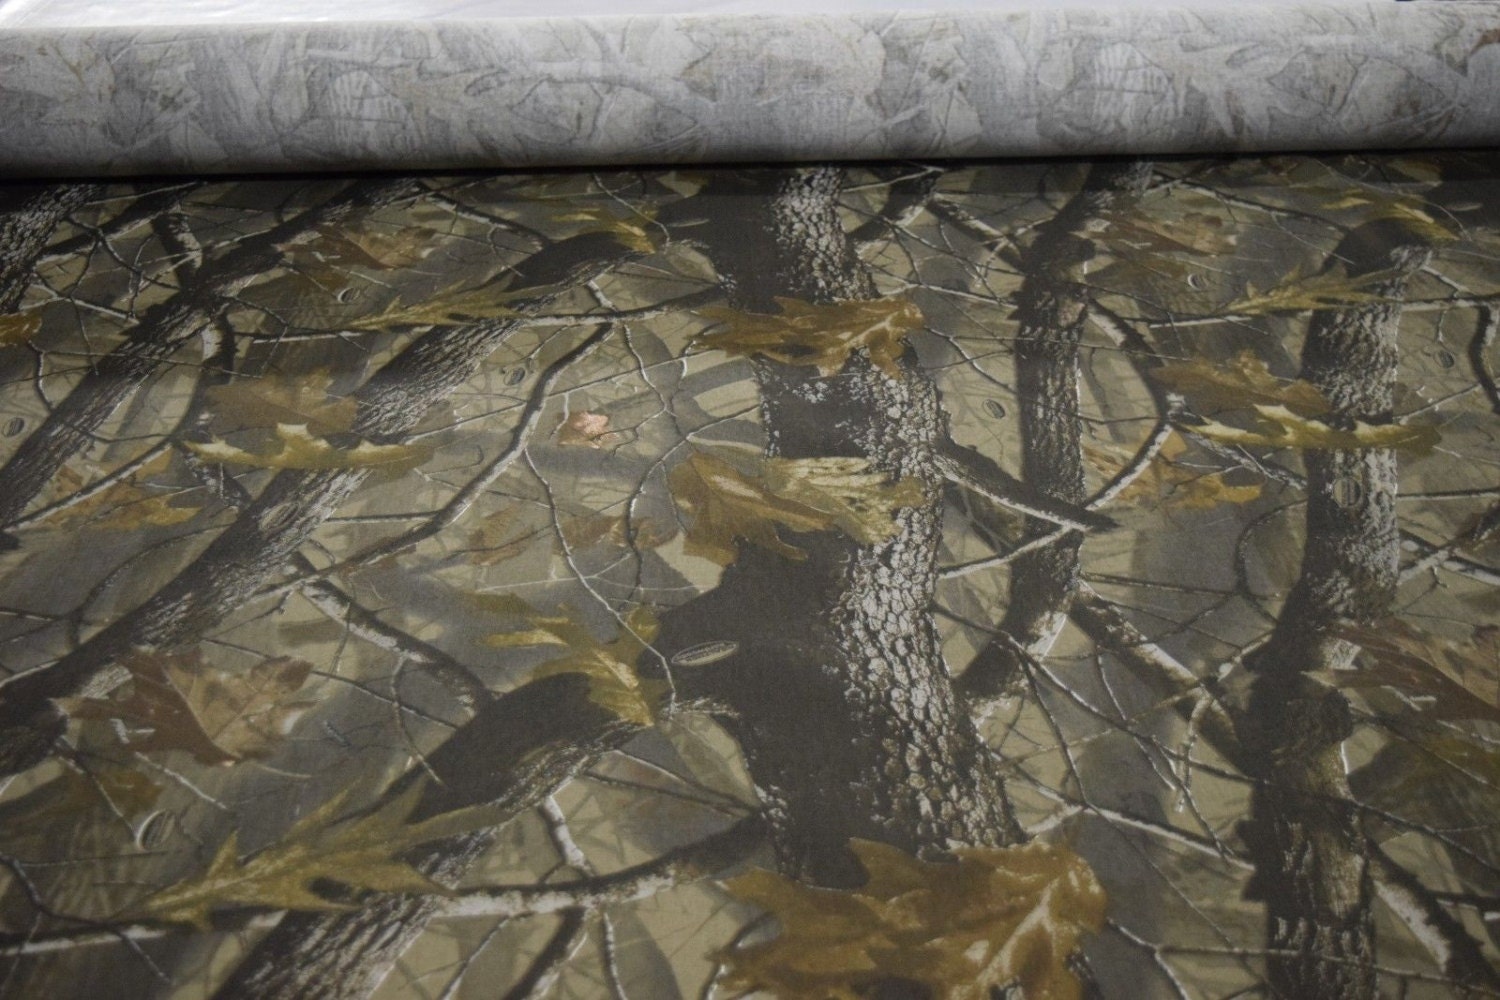 Realtree hardwoods hunting camouflage fabric poly cotton twill